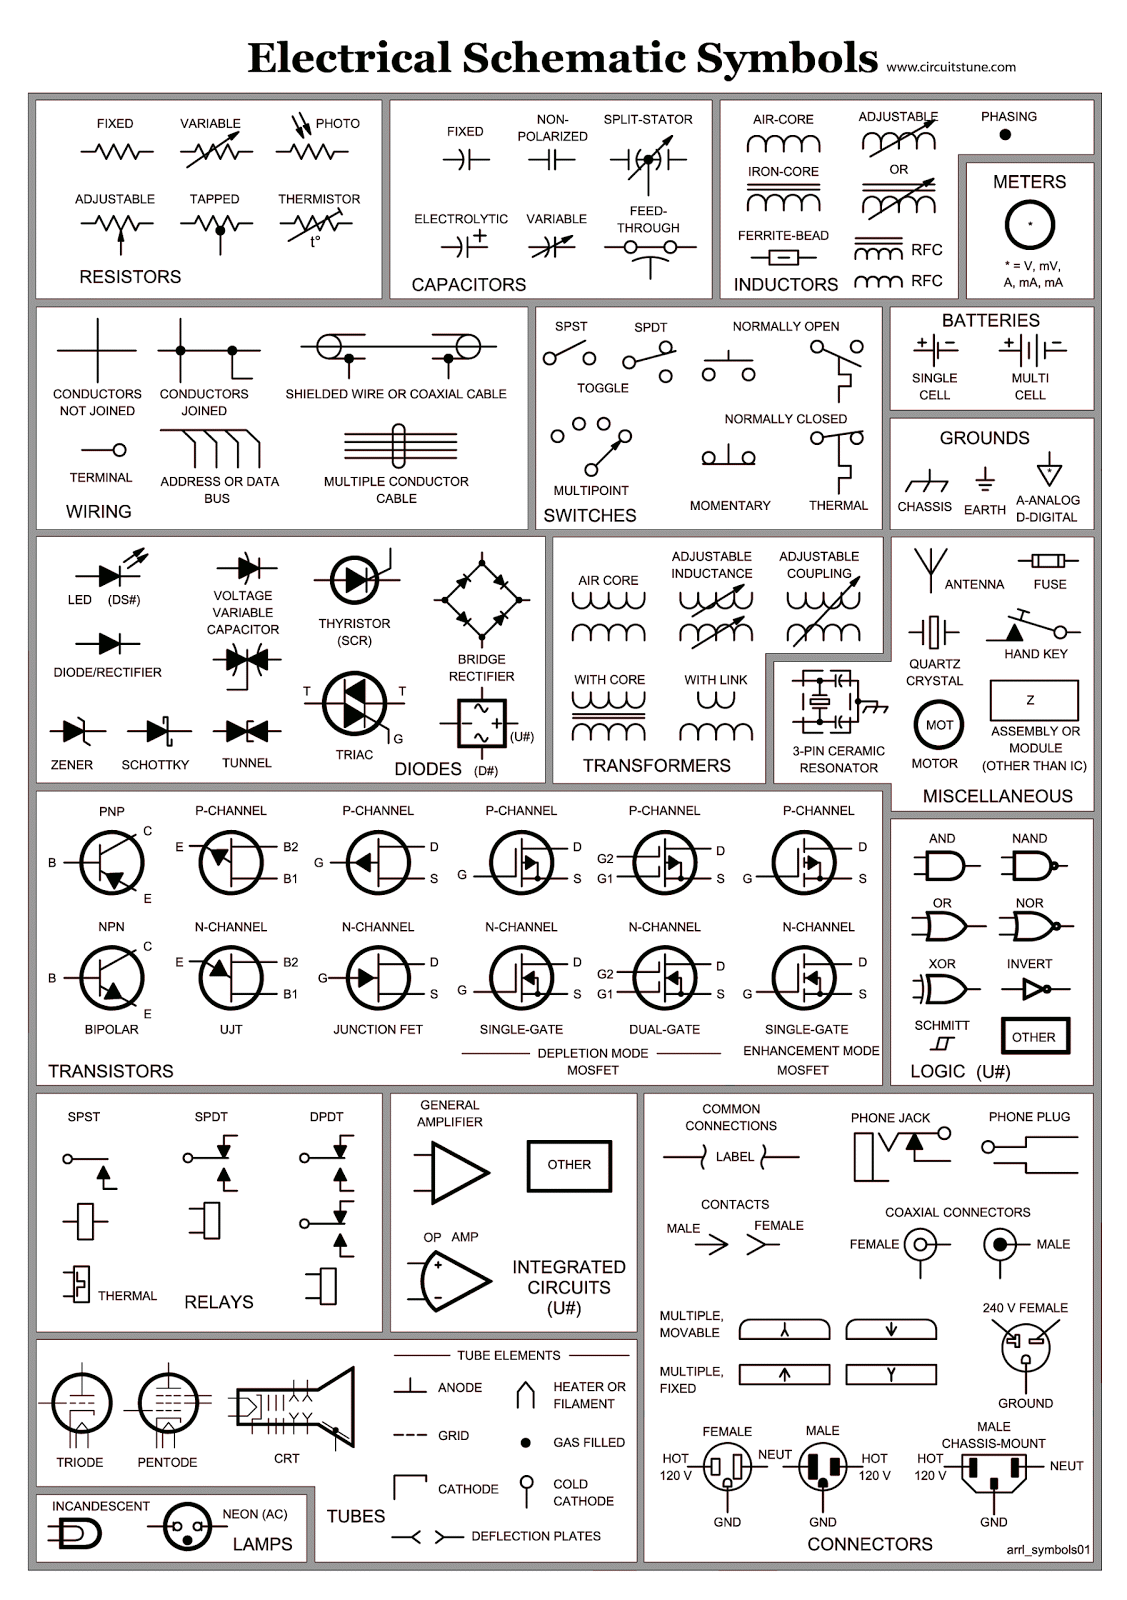 Electrical Schematic Symbols Circuitstune This Is So